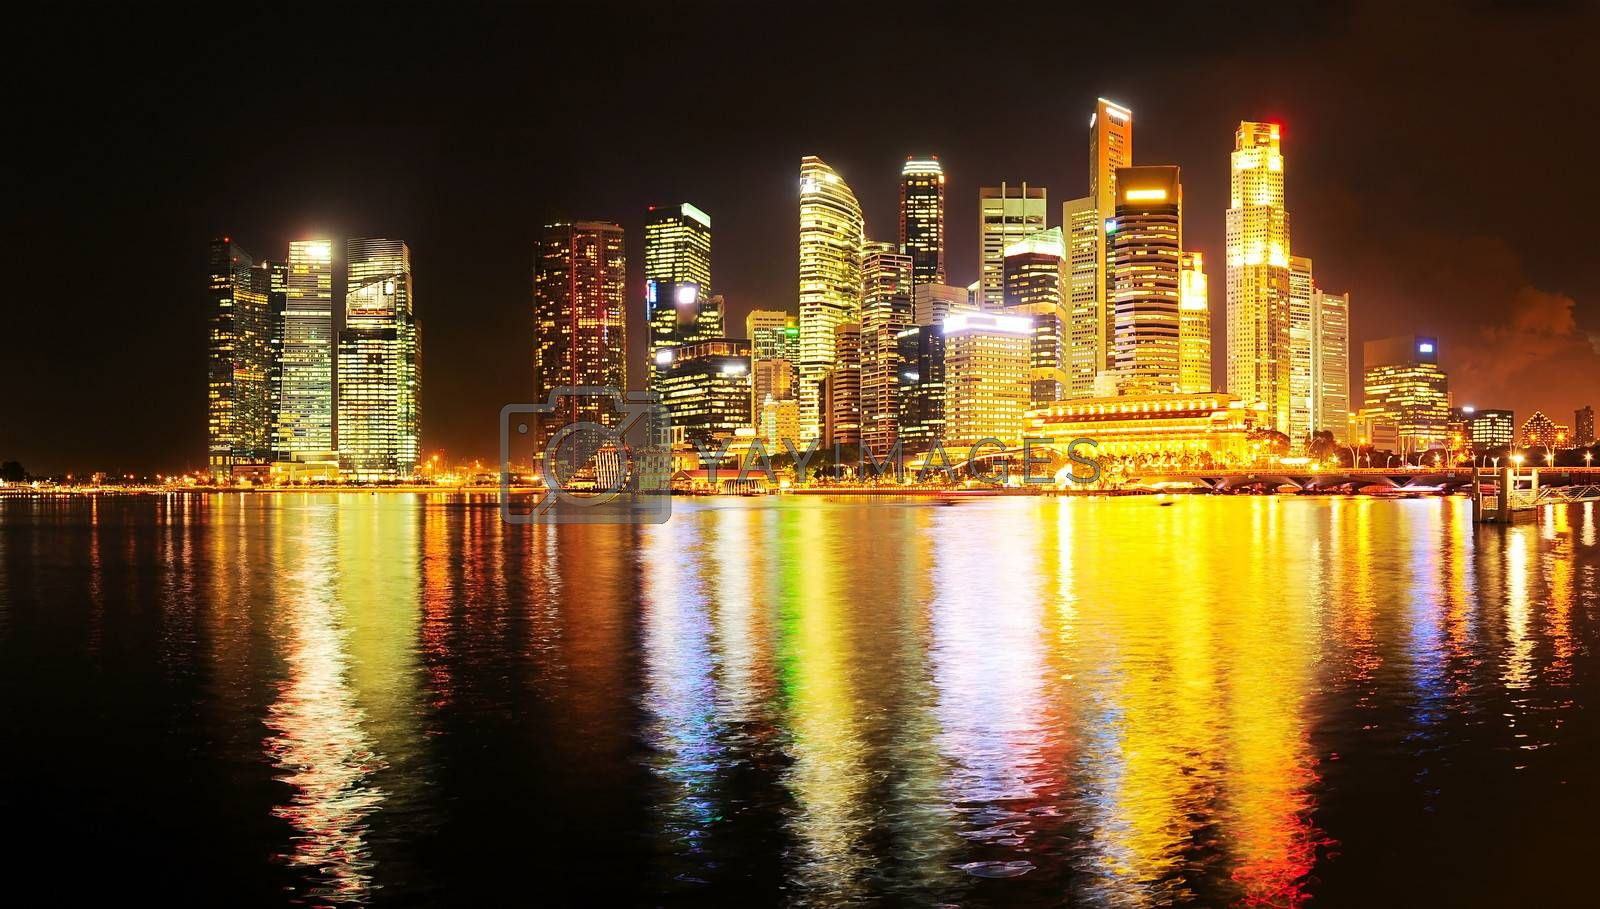 Night Panoramic view of illuminated Singapore downtown